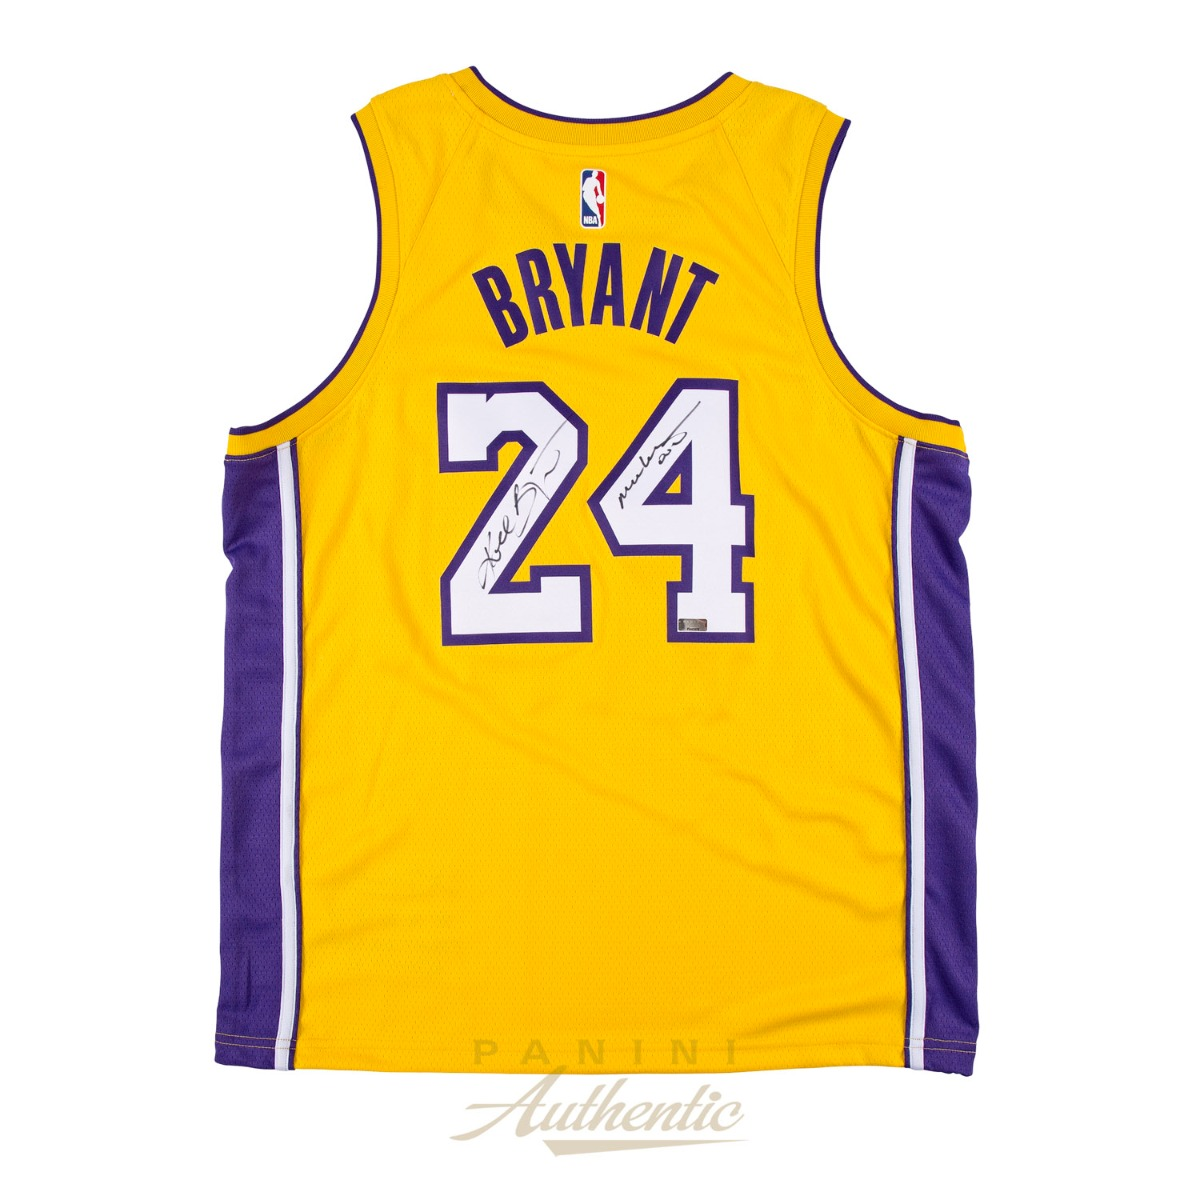 866ffa311a0 Kobe Bryant Autographed Gold Nike Retirement Ceremony Jersey with